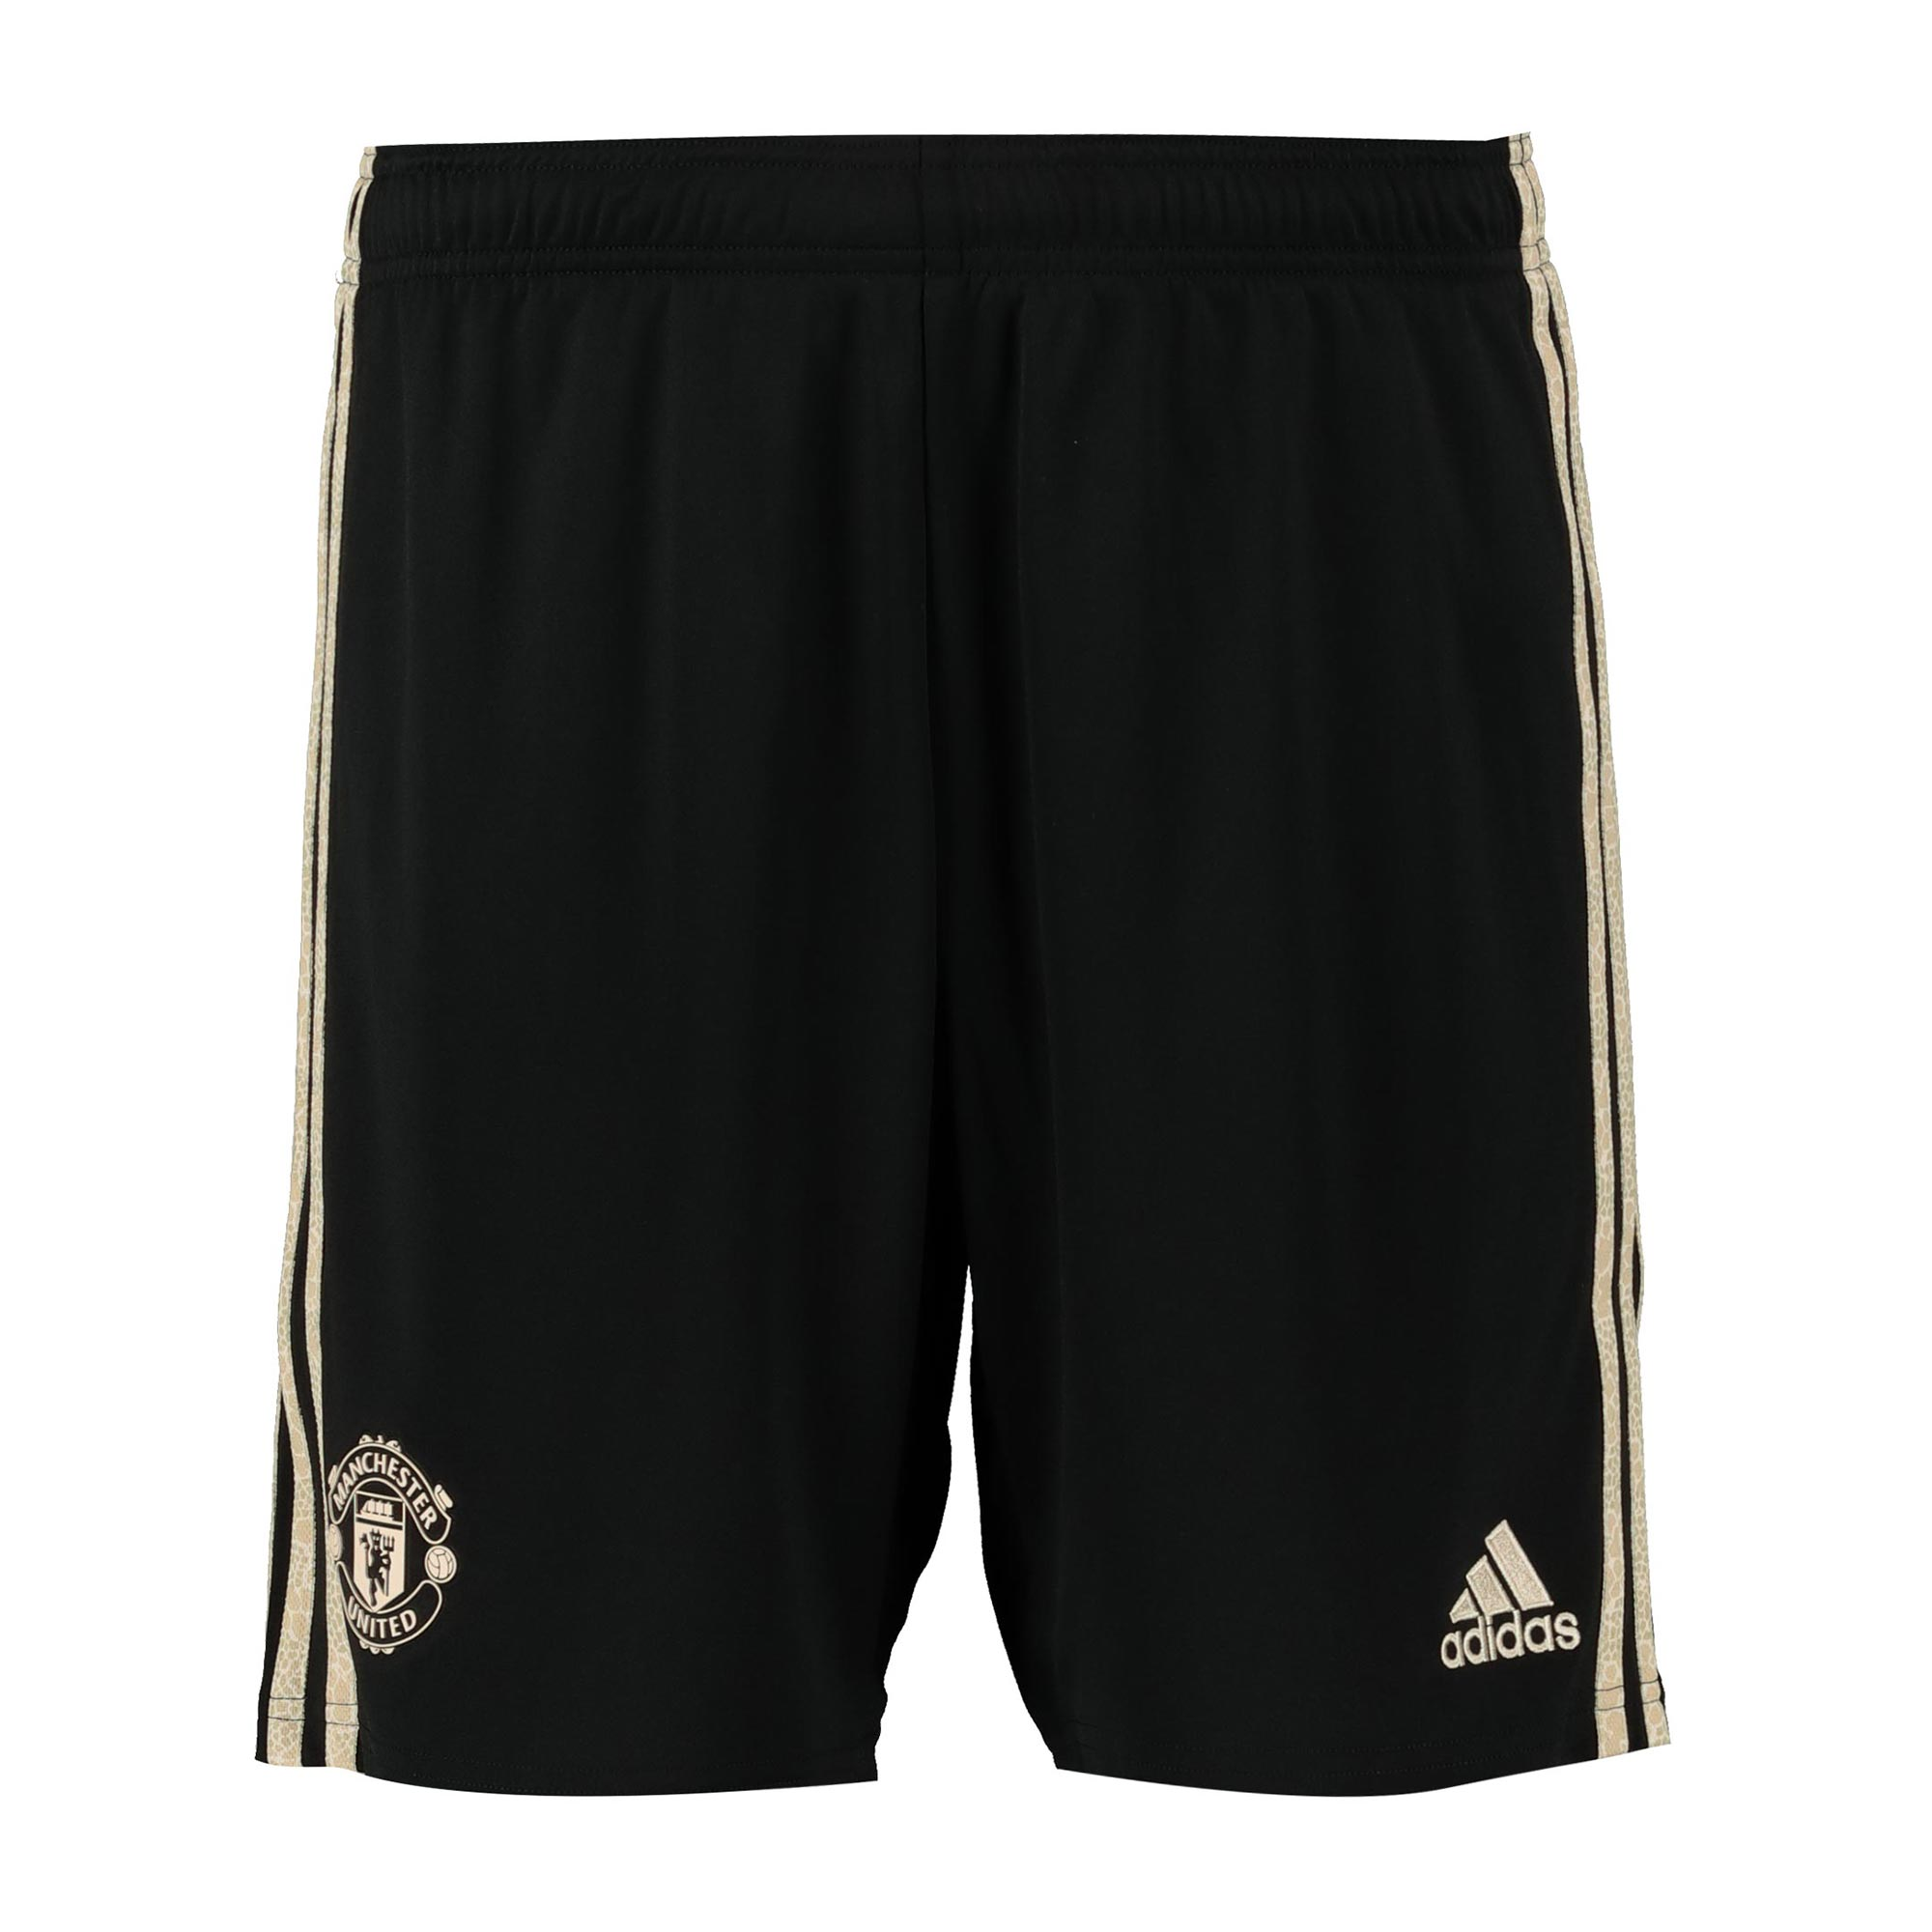 Manchester United Away Shorts 2019 - 20 - Kids